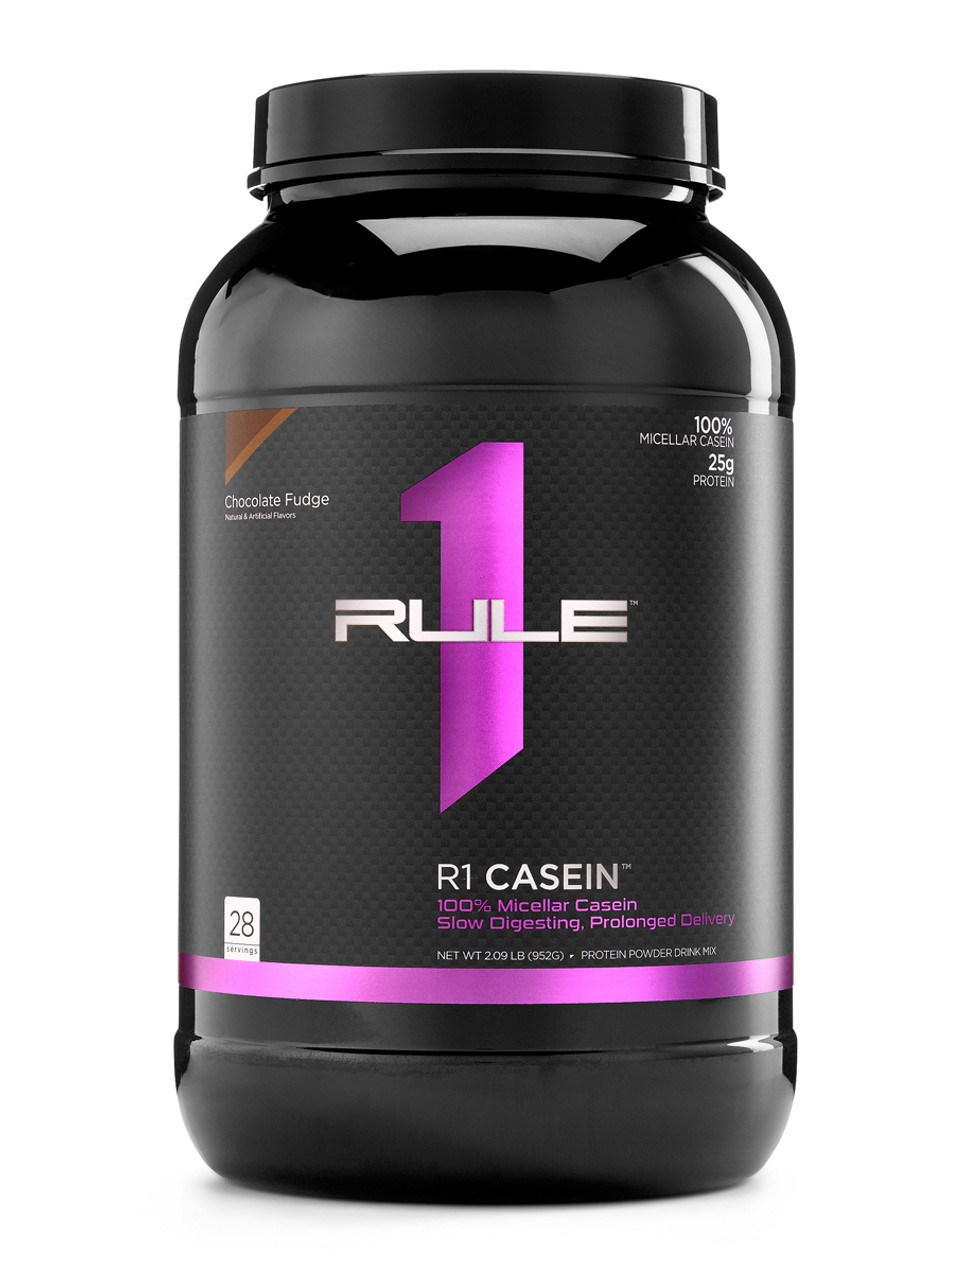 Casein: what it is Why casein protein is not recommended 20